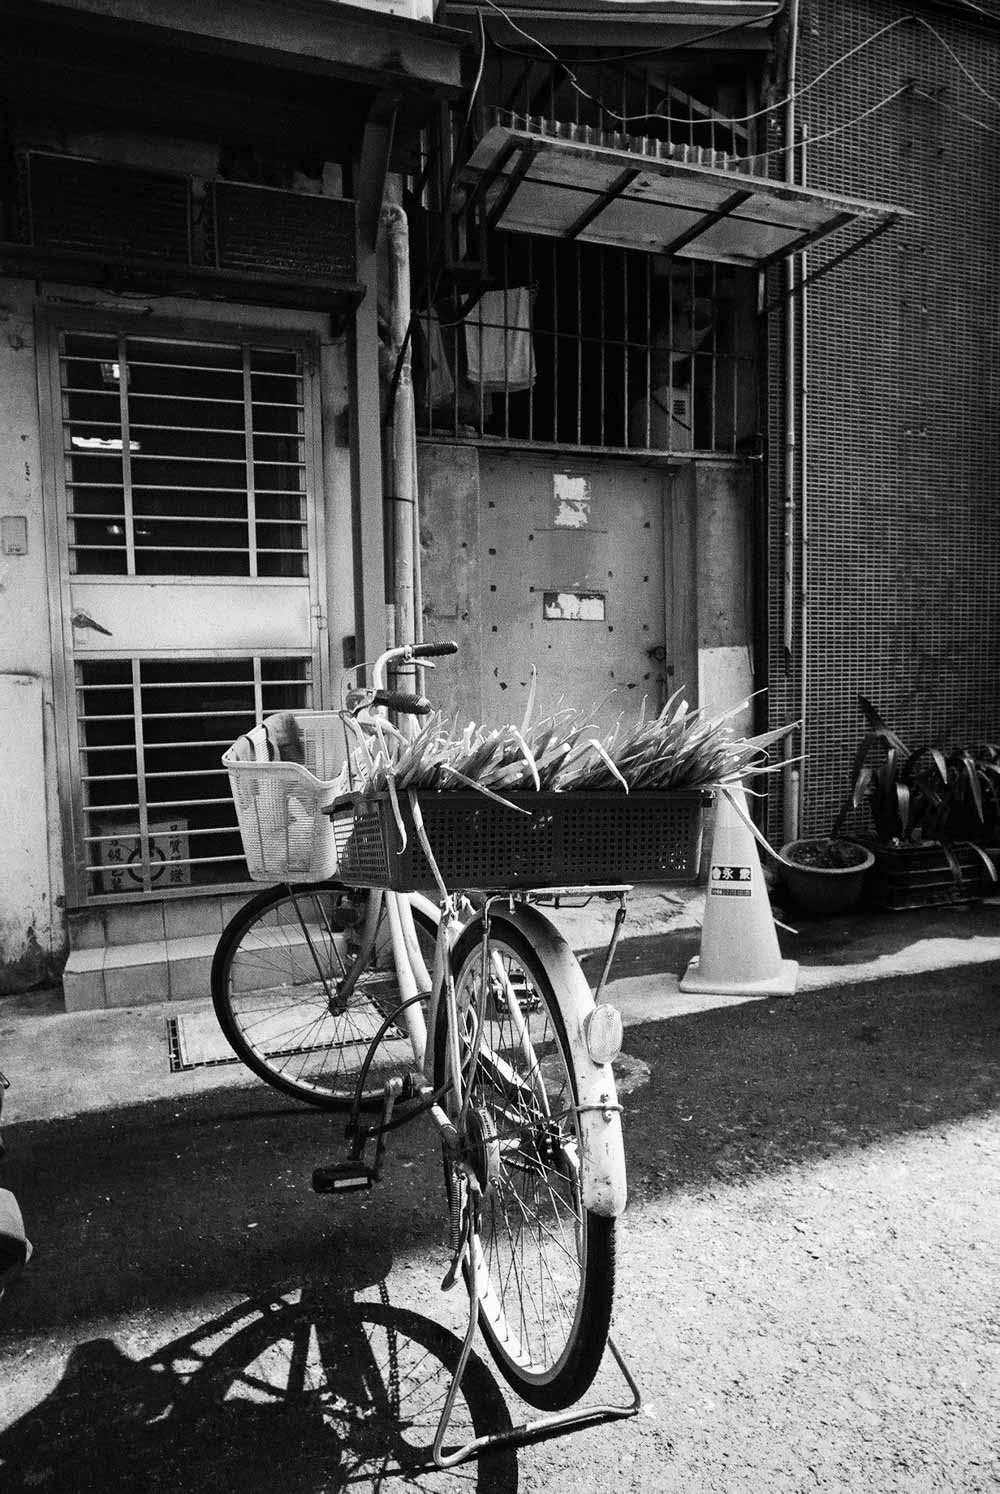 Special delivery - Shot on ILFORD HP5 PLUS at EI 400. Black and white film in 35mm format.